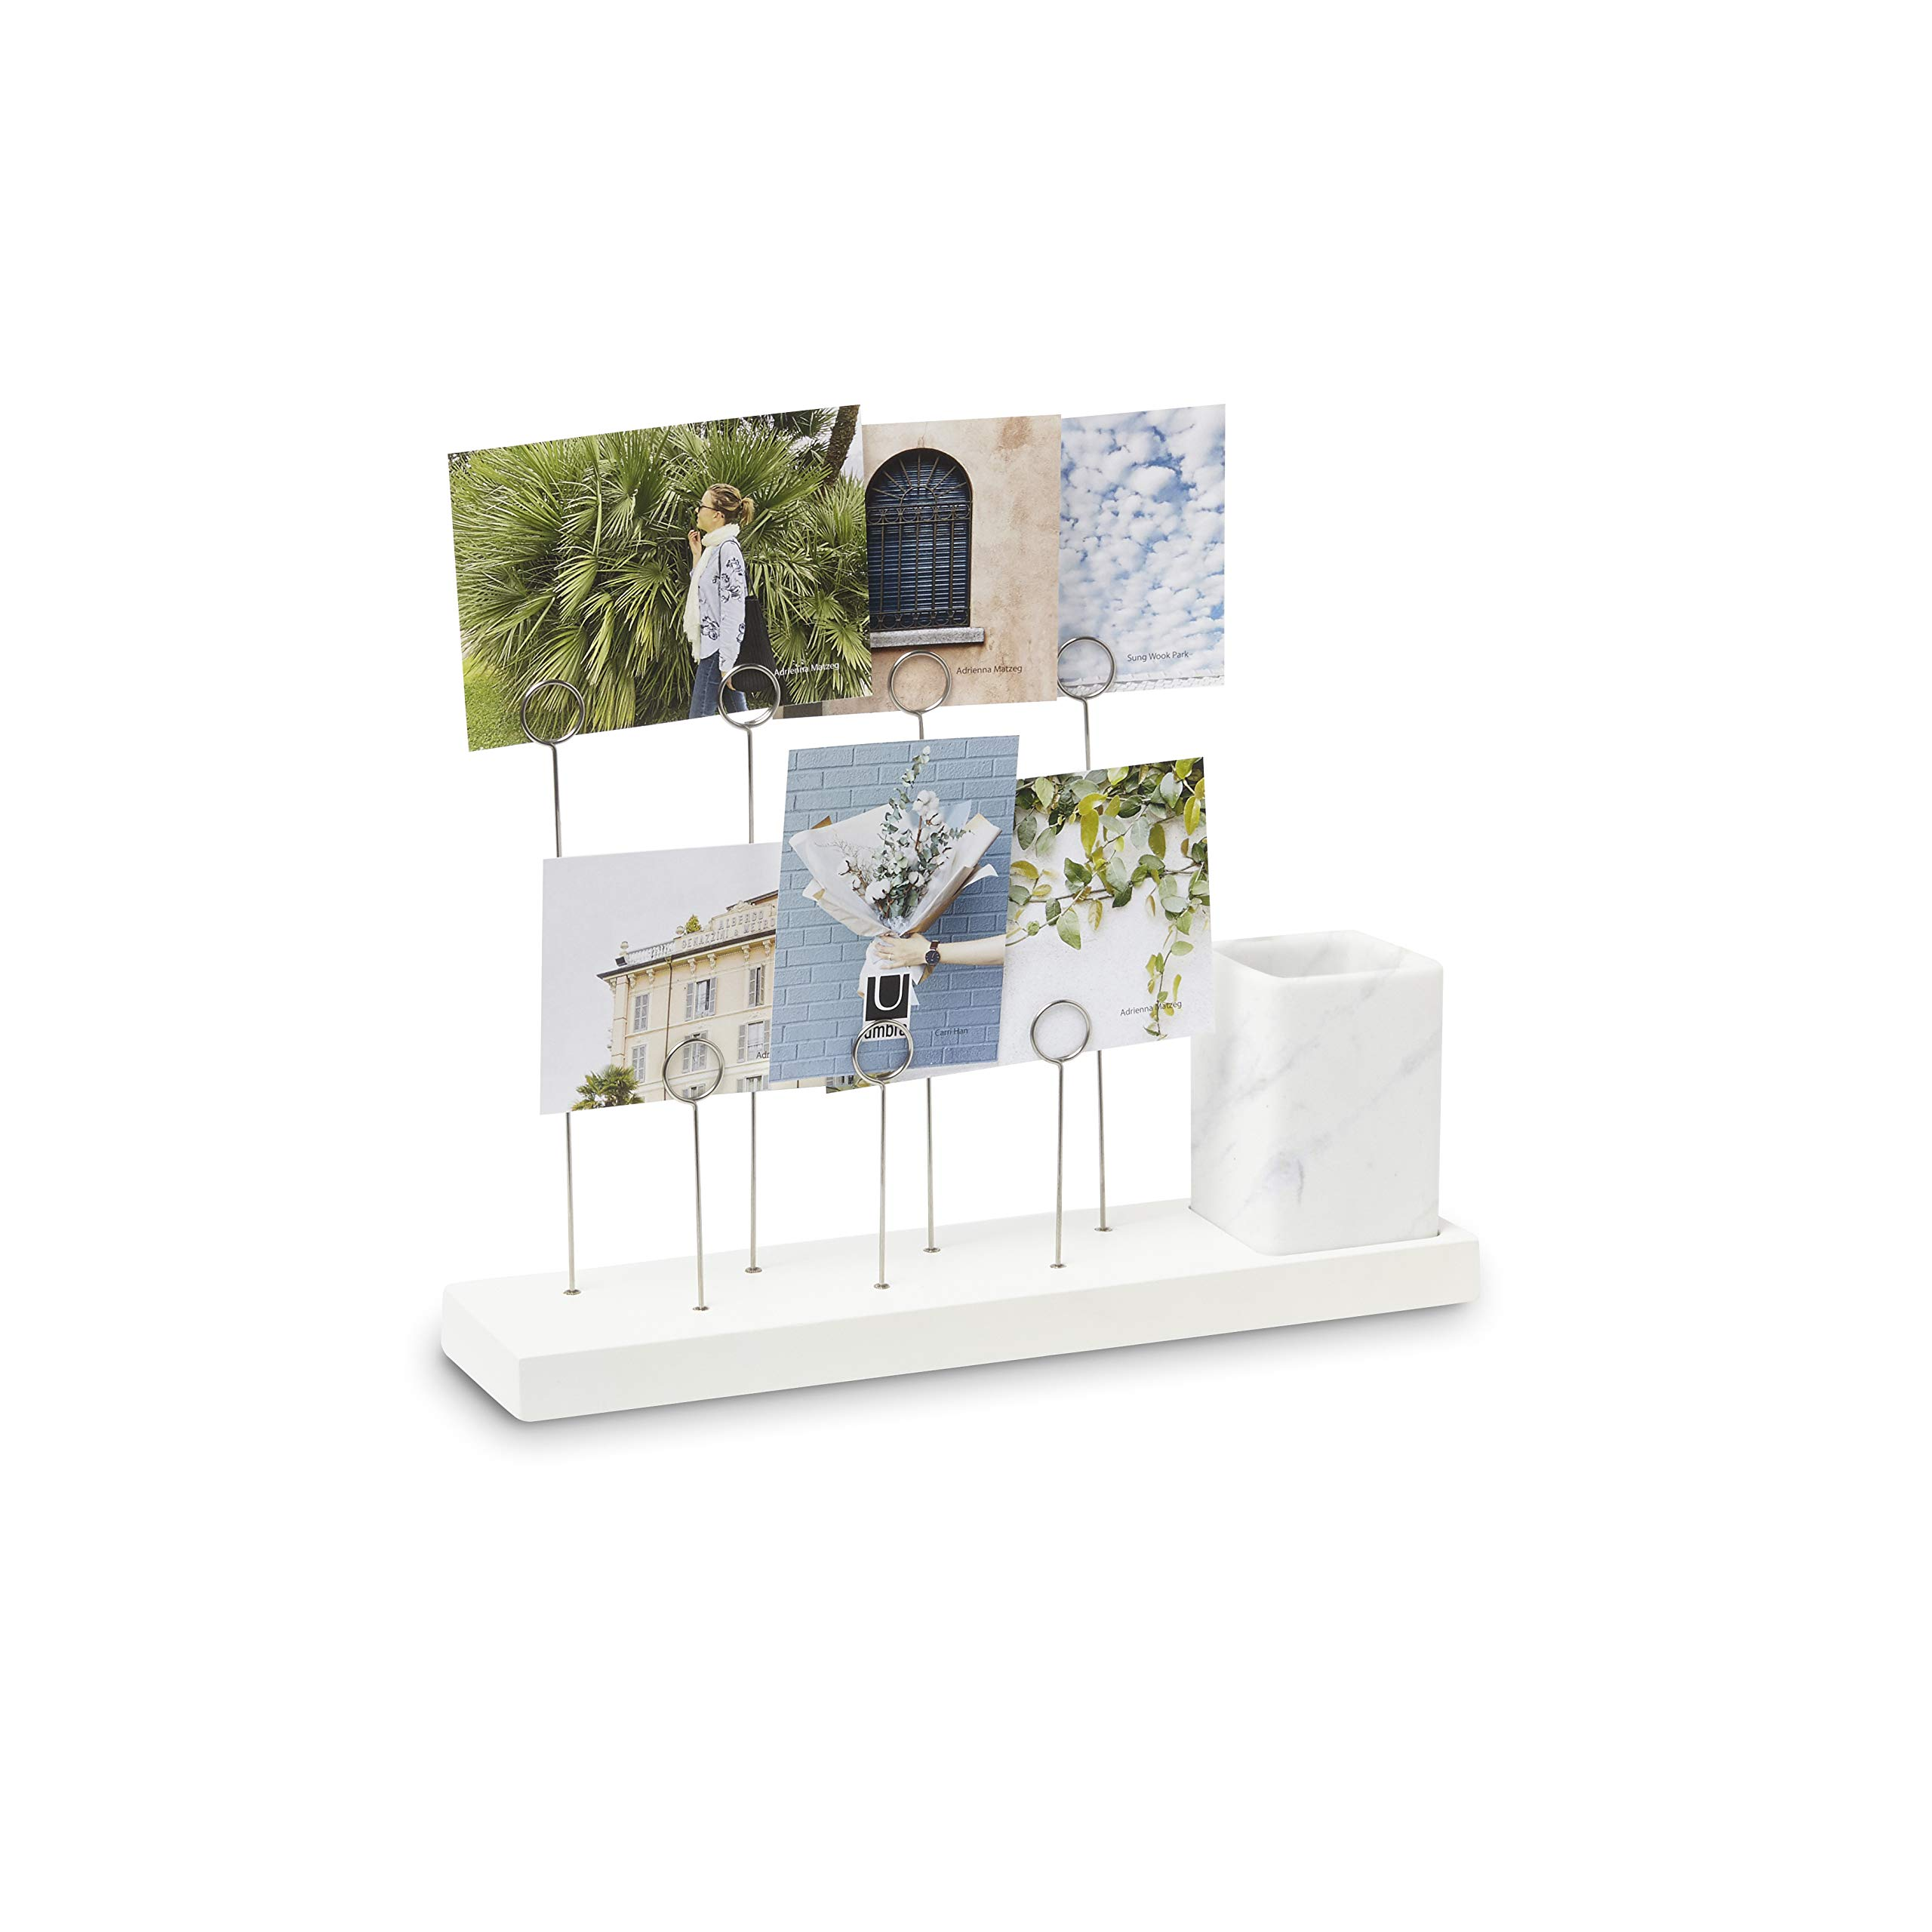 Umbra Gala, Multi Built in Planter or Pen Holder for Desk, Non Picture Frame with 7 Photo Clips, White by Umbra